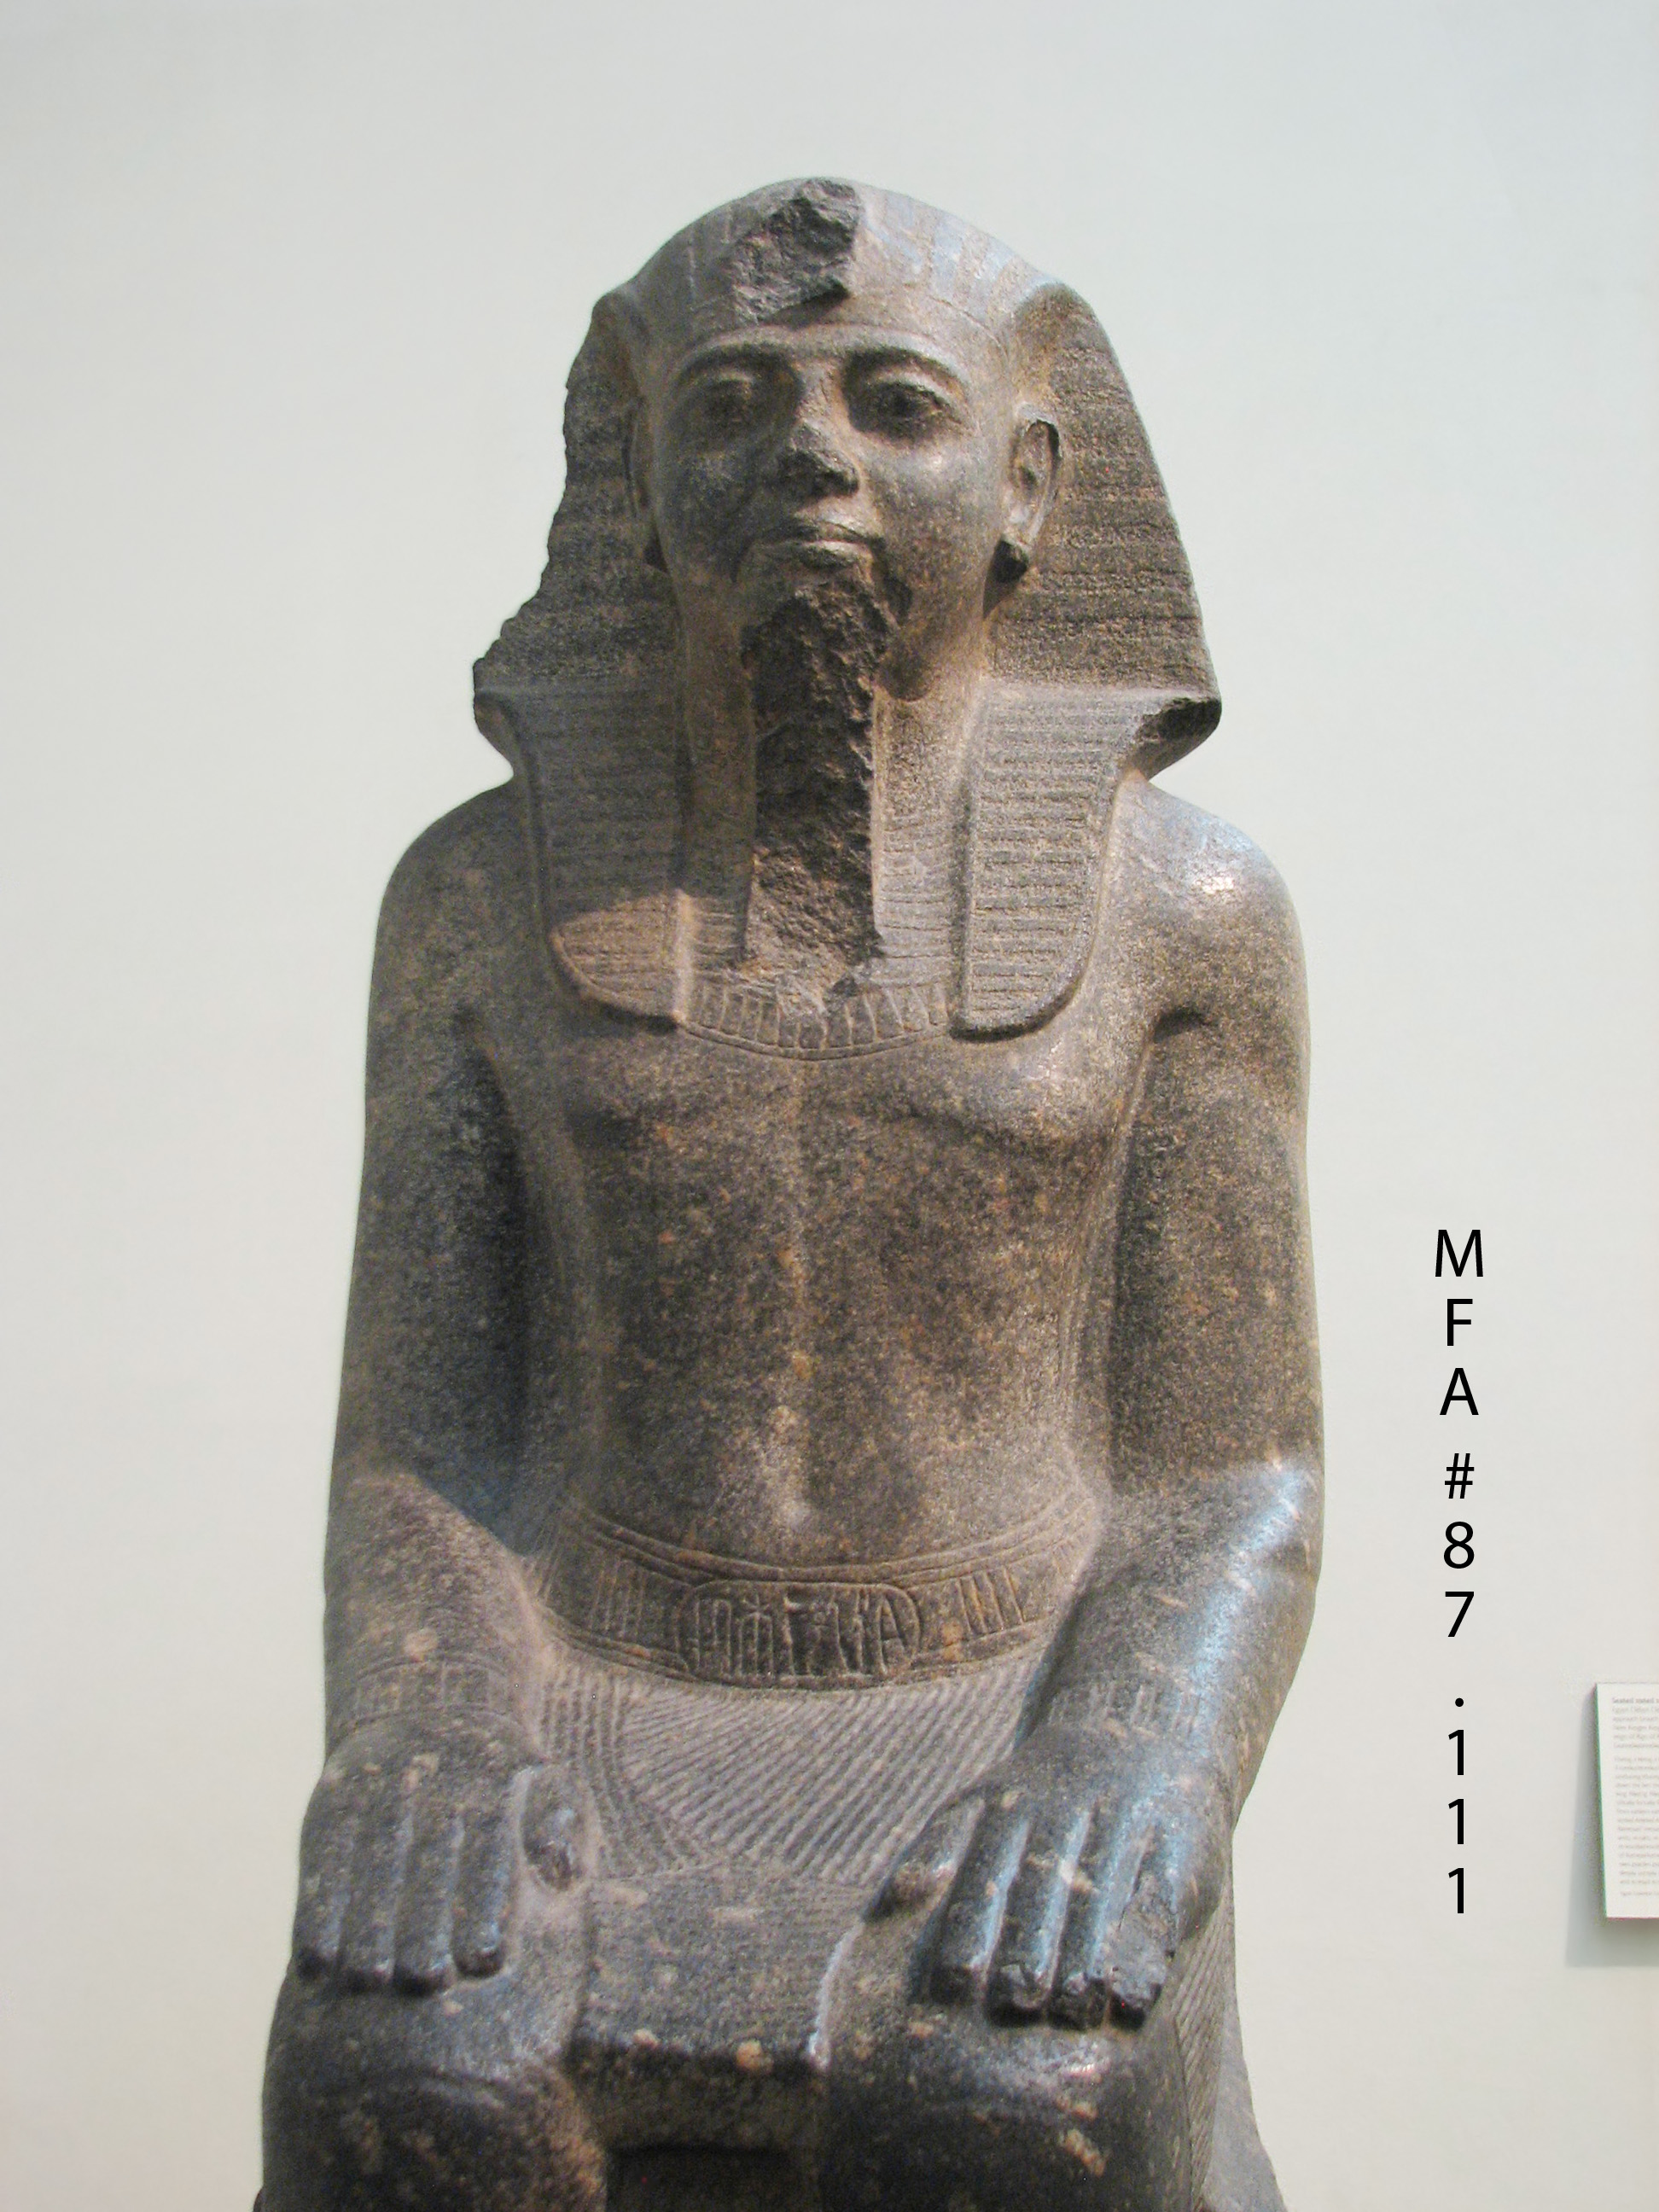 analysis of statue of ramesses ii Ramesses ii fought the hittites and signed the world's first official peace treaty   of abu simbel with four colossal seated statues of ramesses ii.